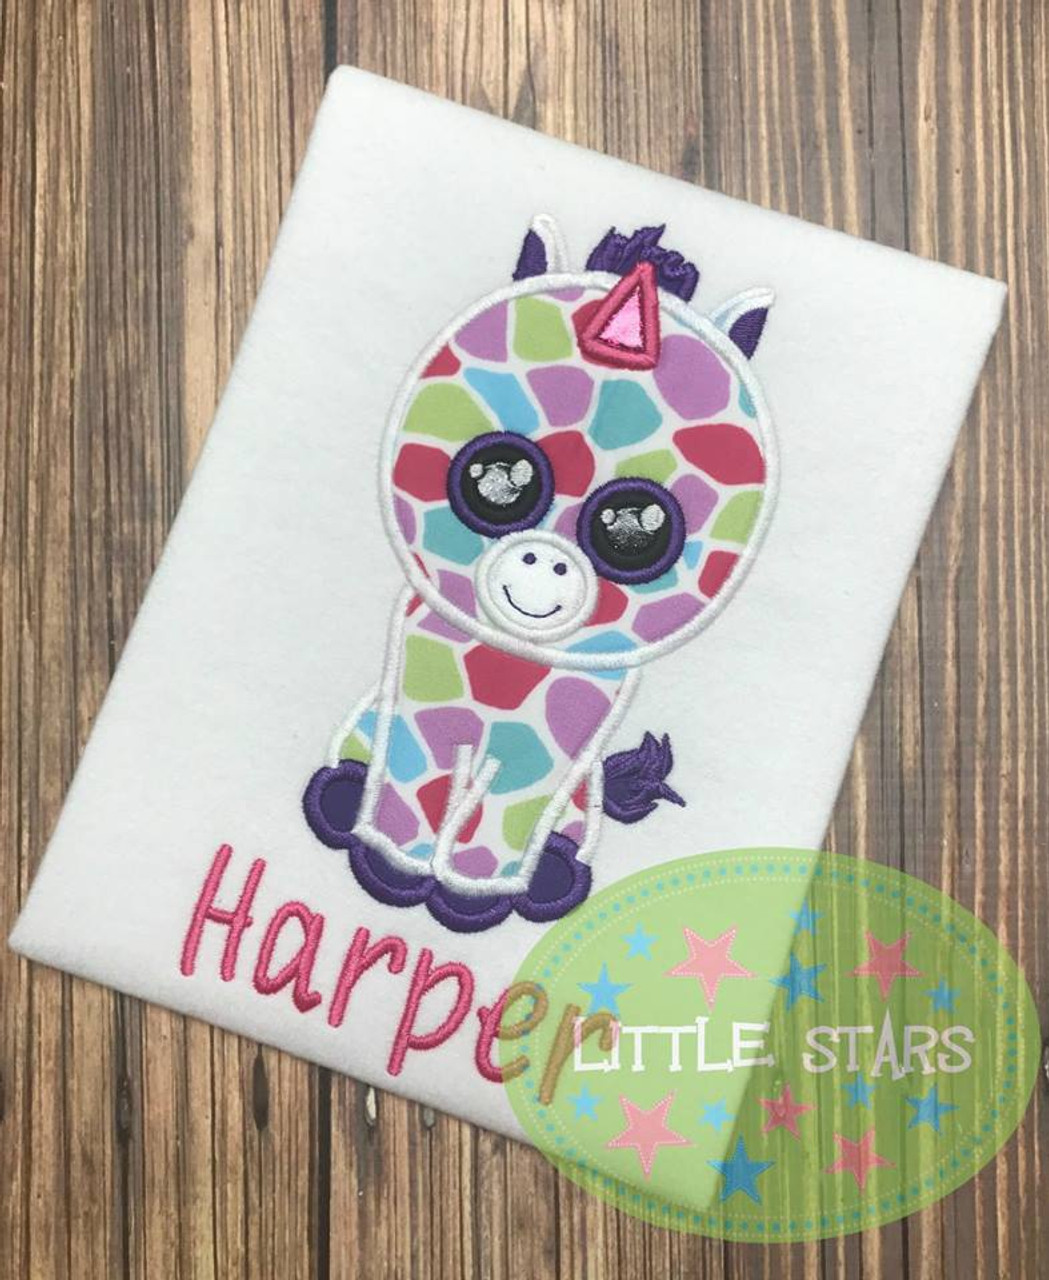 b5b04c1a66a Beanie Boo Pink Zebra Applique Design by Appliques With Character